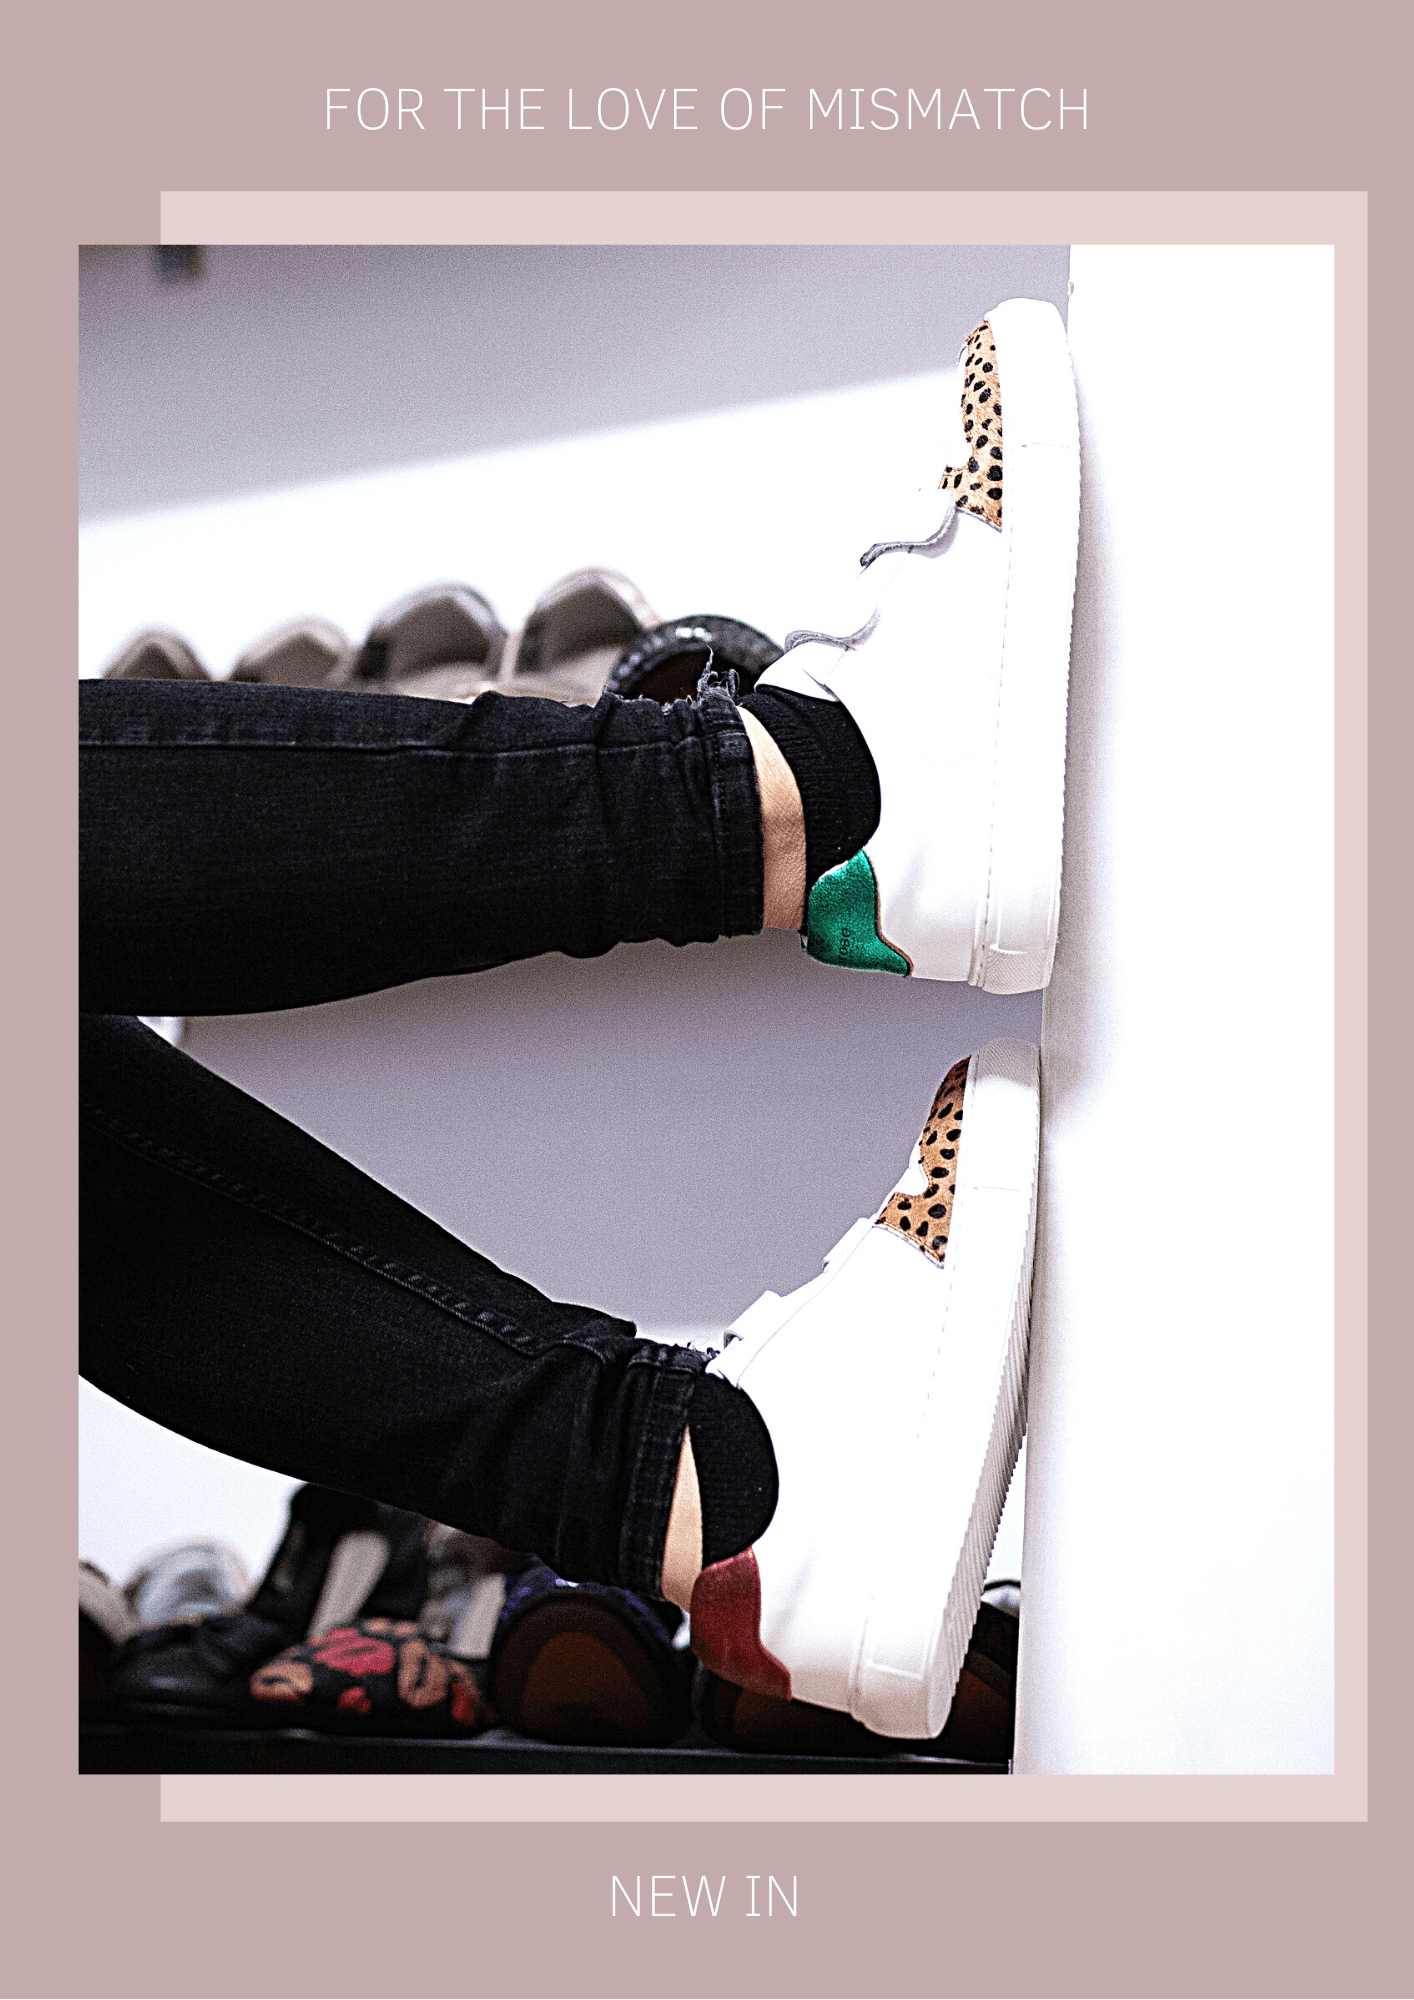 For the love of mismatch - metallic red and green backed trainers